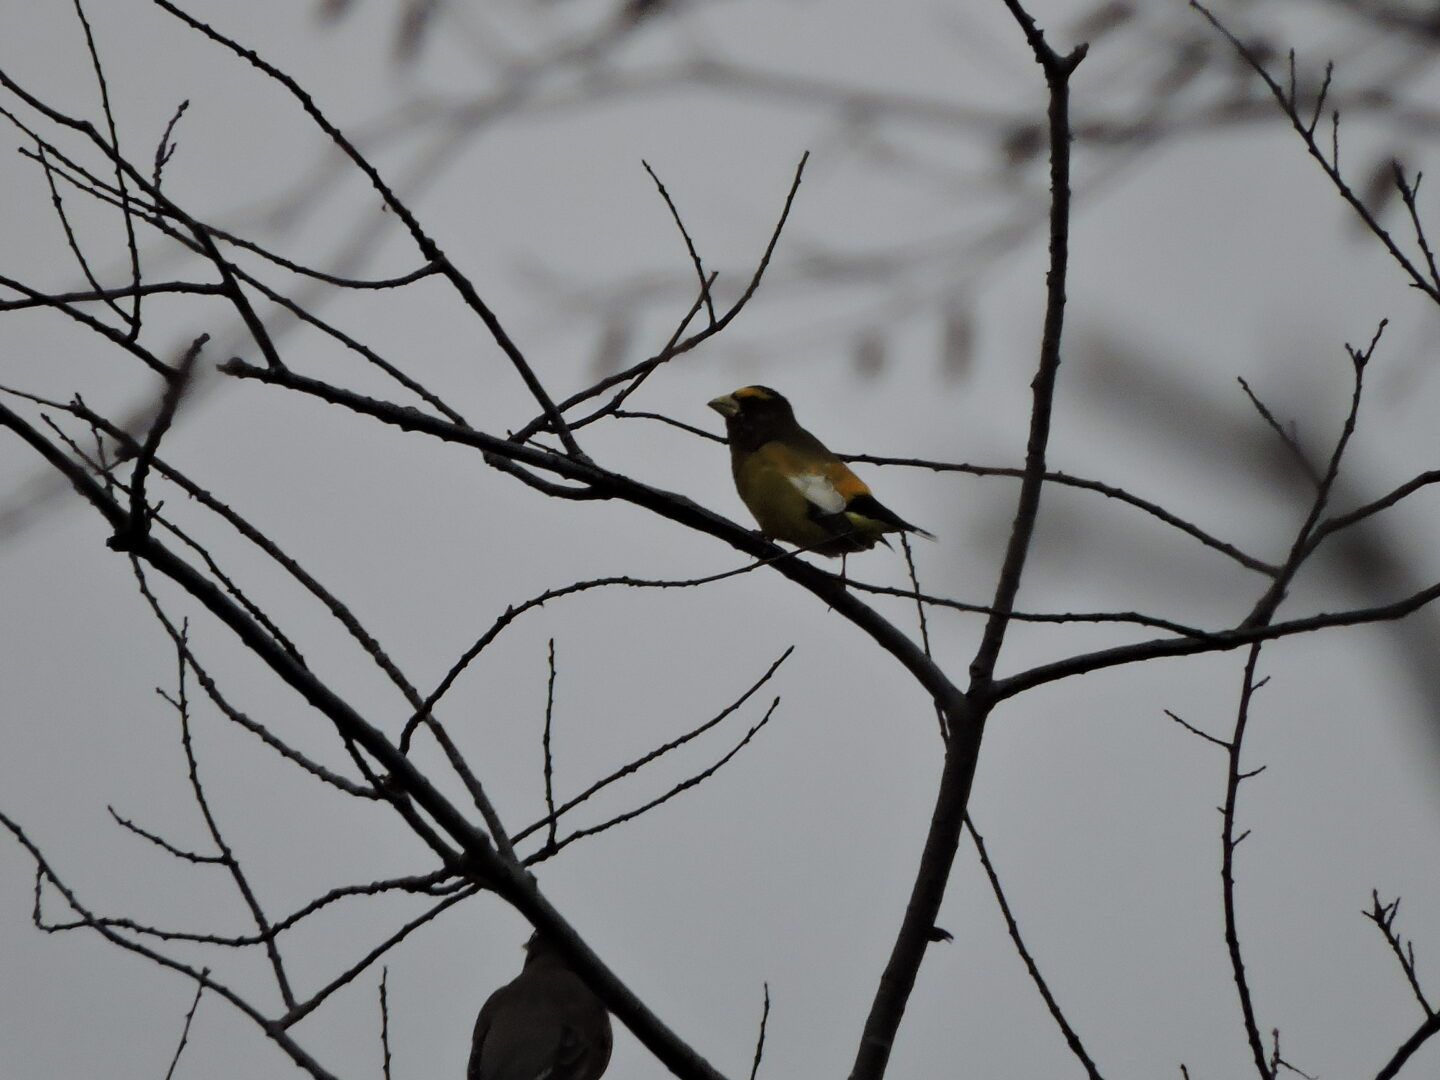 Part two of this double whammy was this Evening Grosbeak!